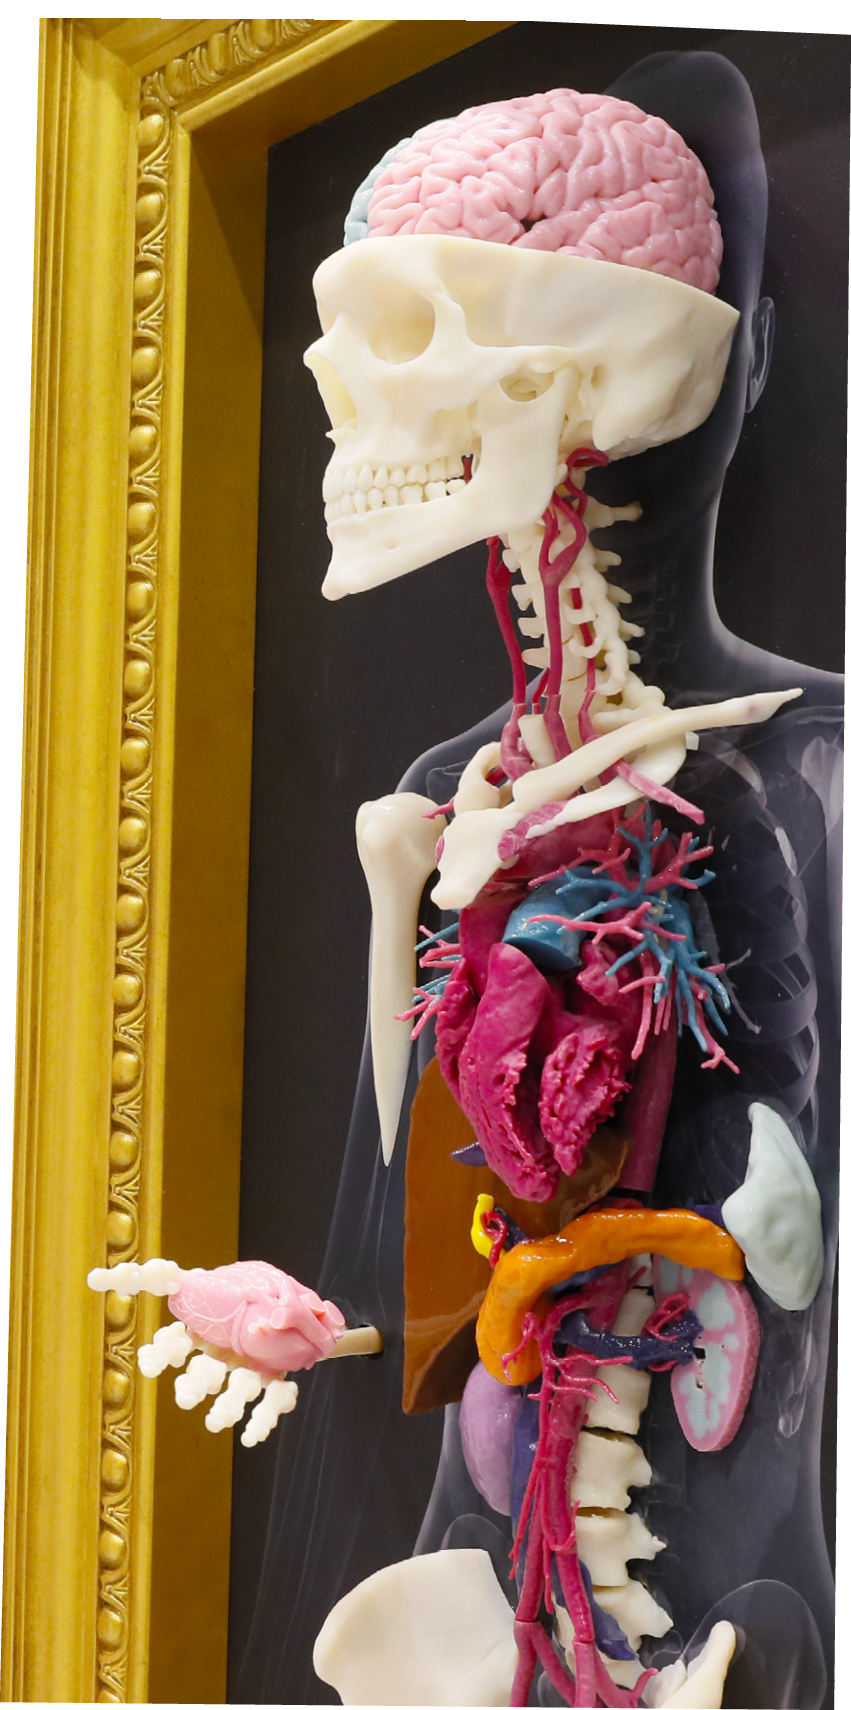 Defining Radiology\'s Role in the 3-D Printing Explosion